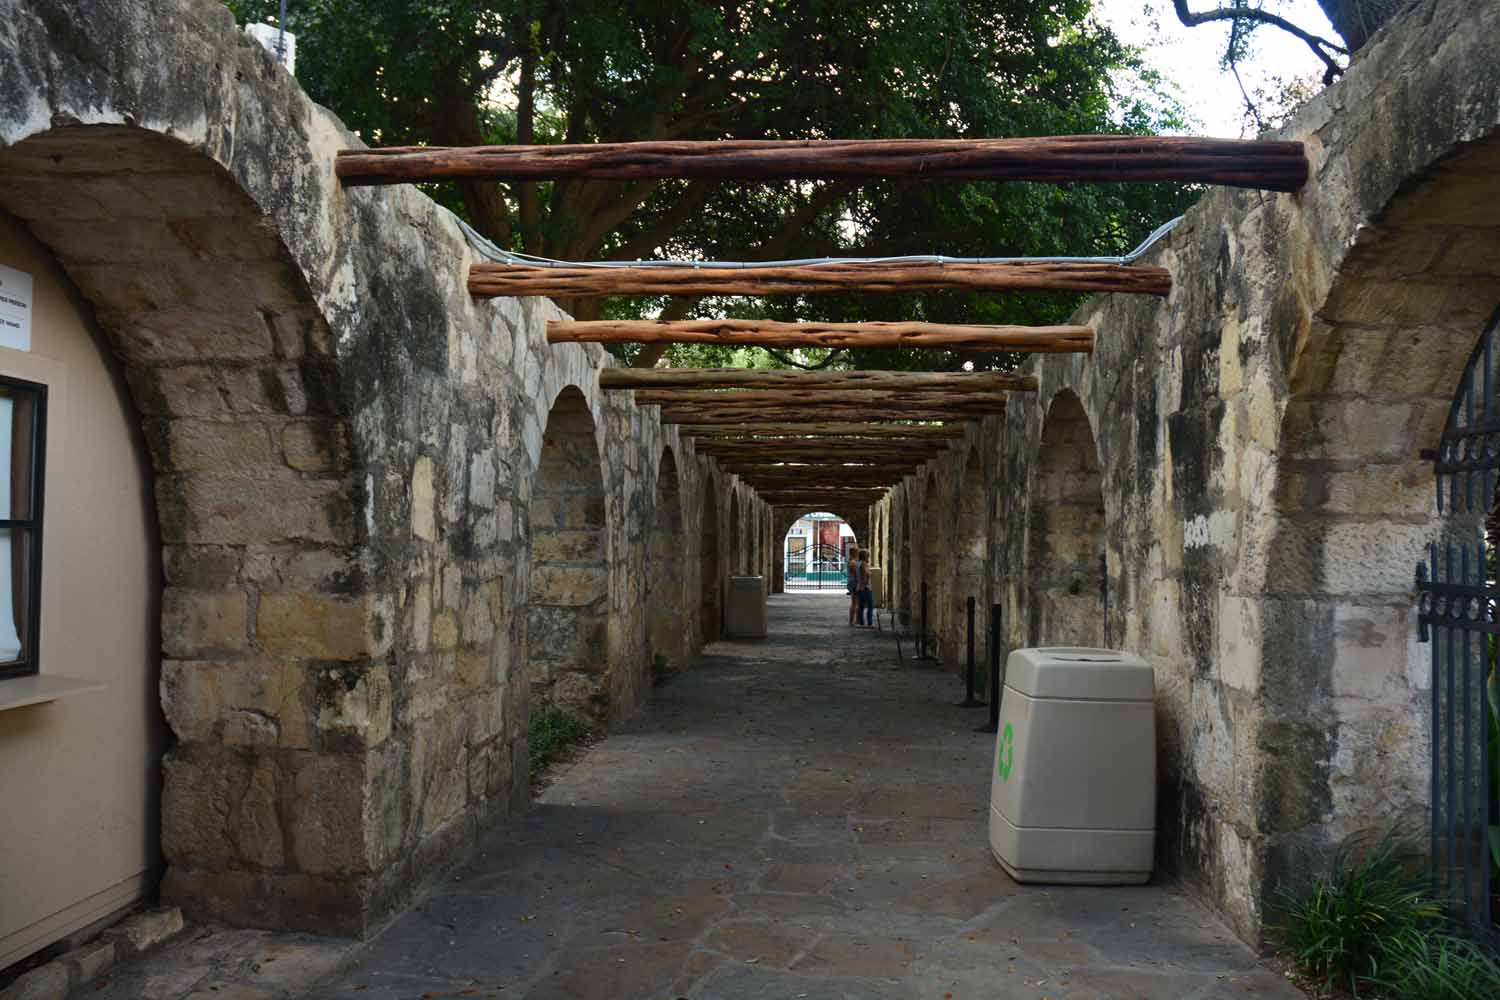 Alamo has lots of interesting corners to check out...